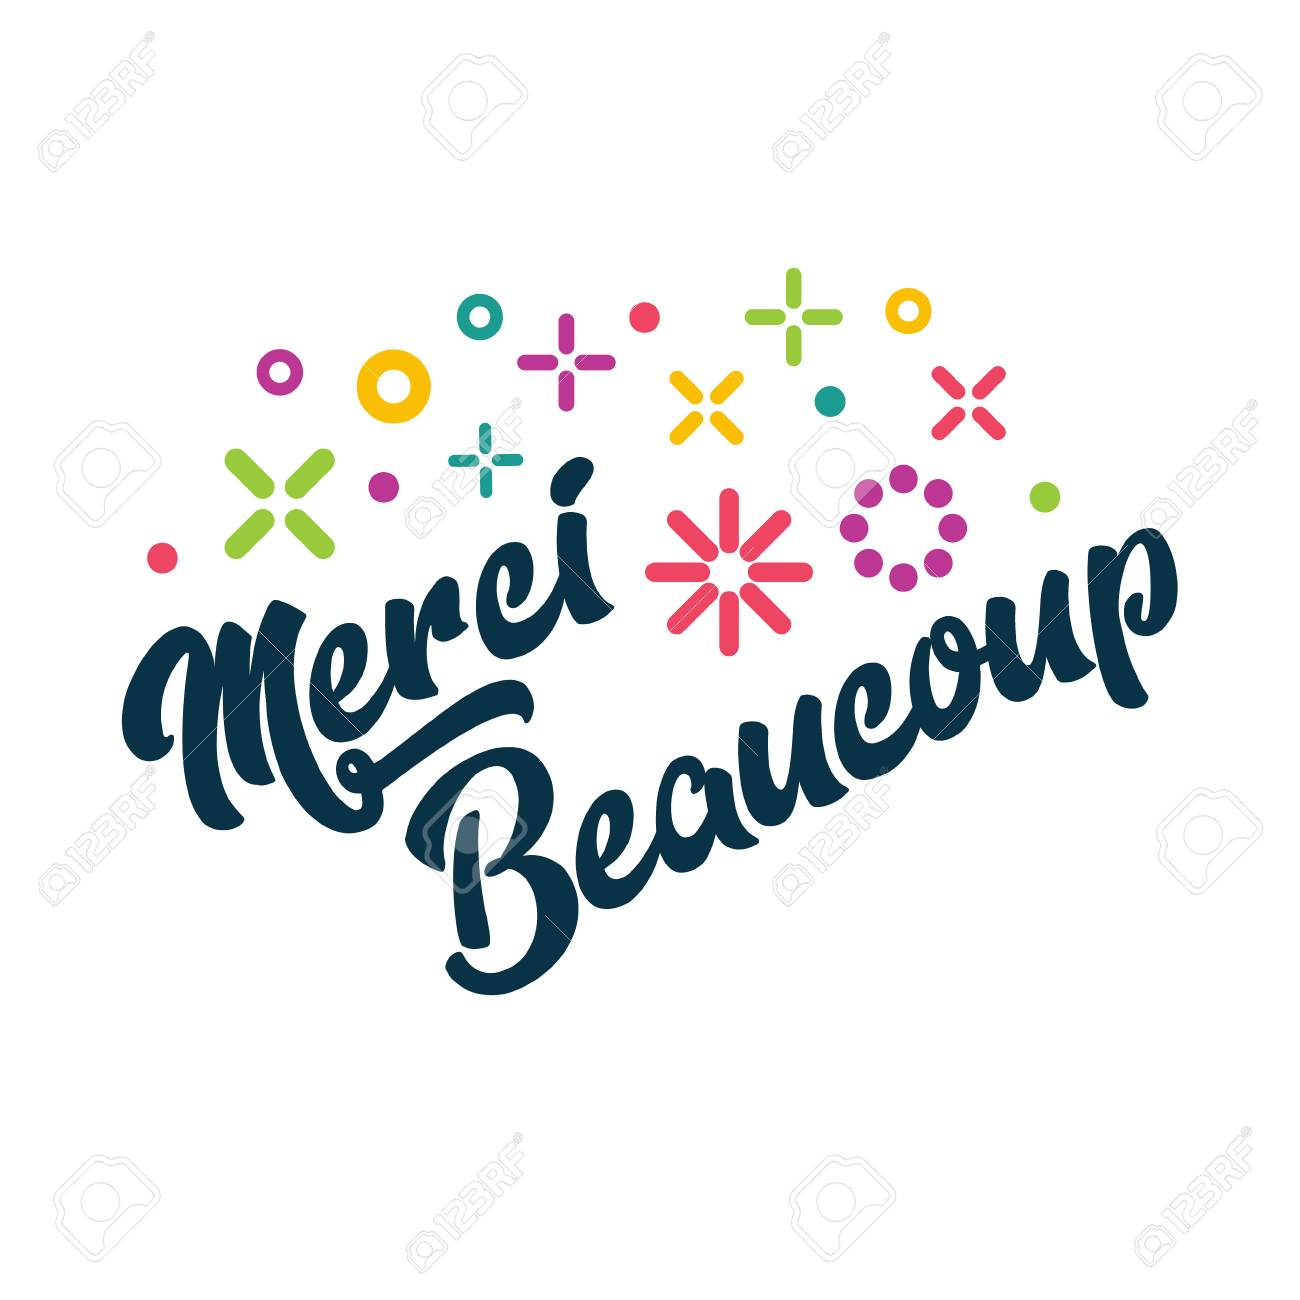 Merci Beaucoup French Thank You Greeting Card Royalty Free Cliparts Vectors And Stock Illustration Image 94100092